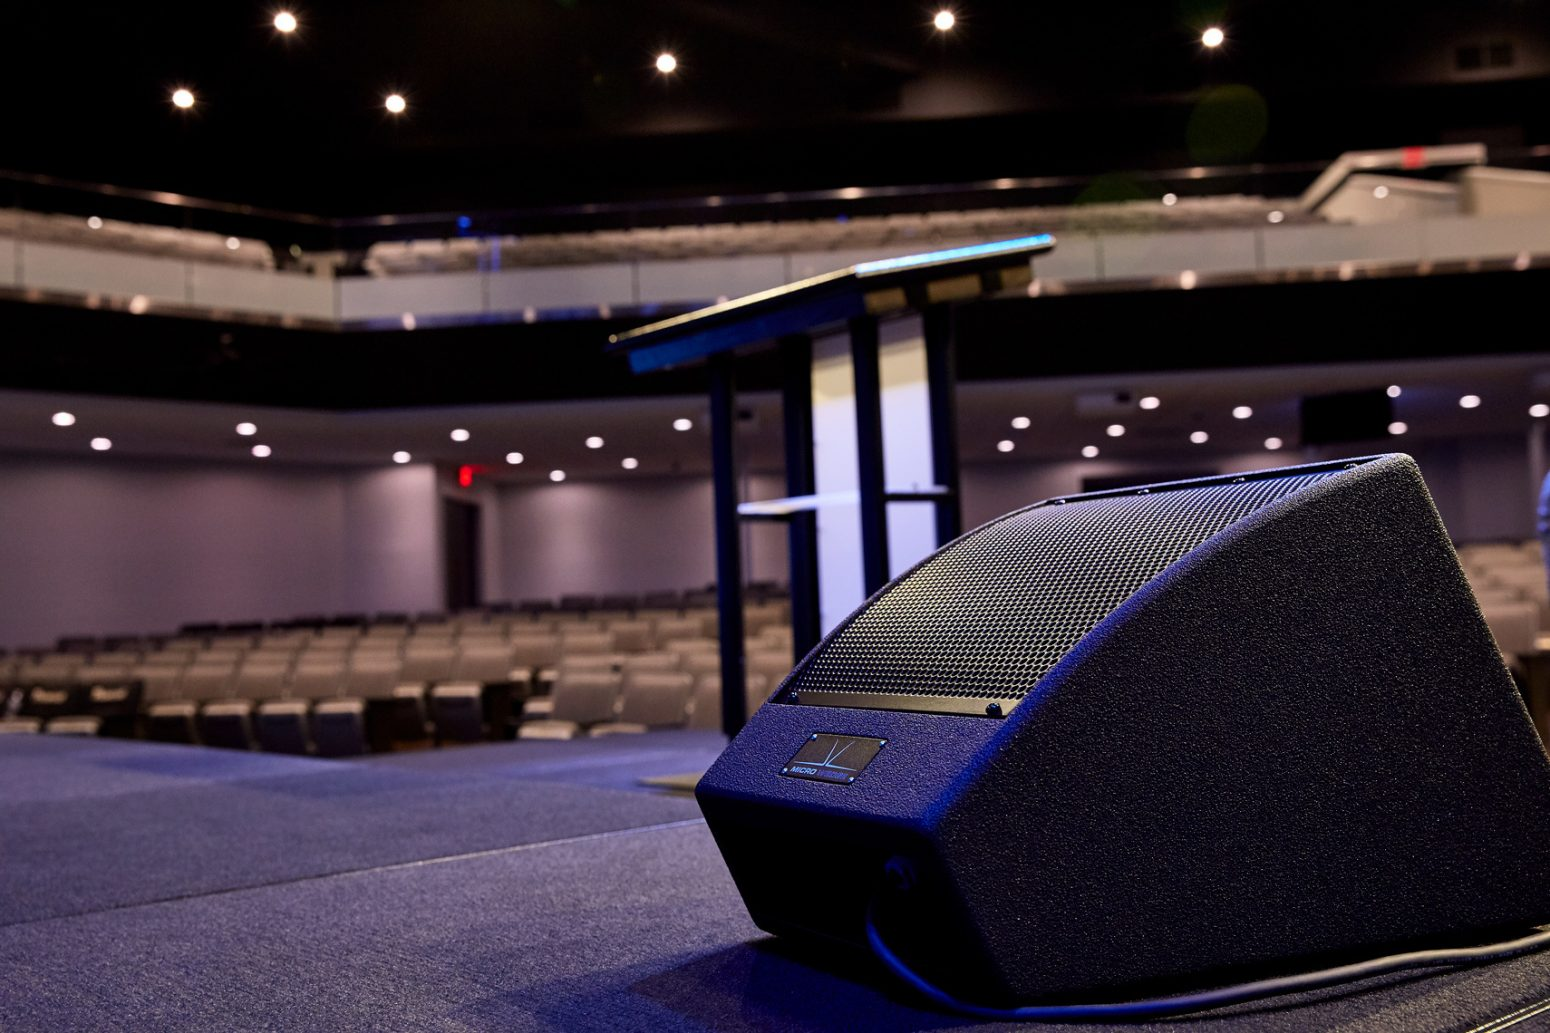 For AVL sound in their audio designs, Paragon 360 uses the latest in speakers, like this.